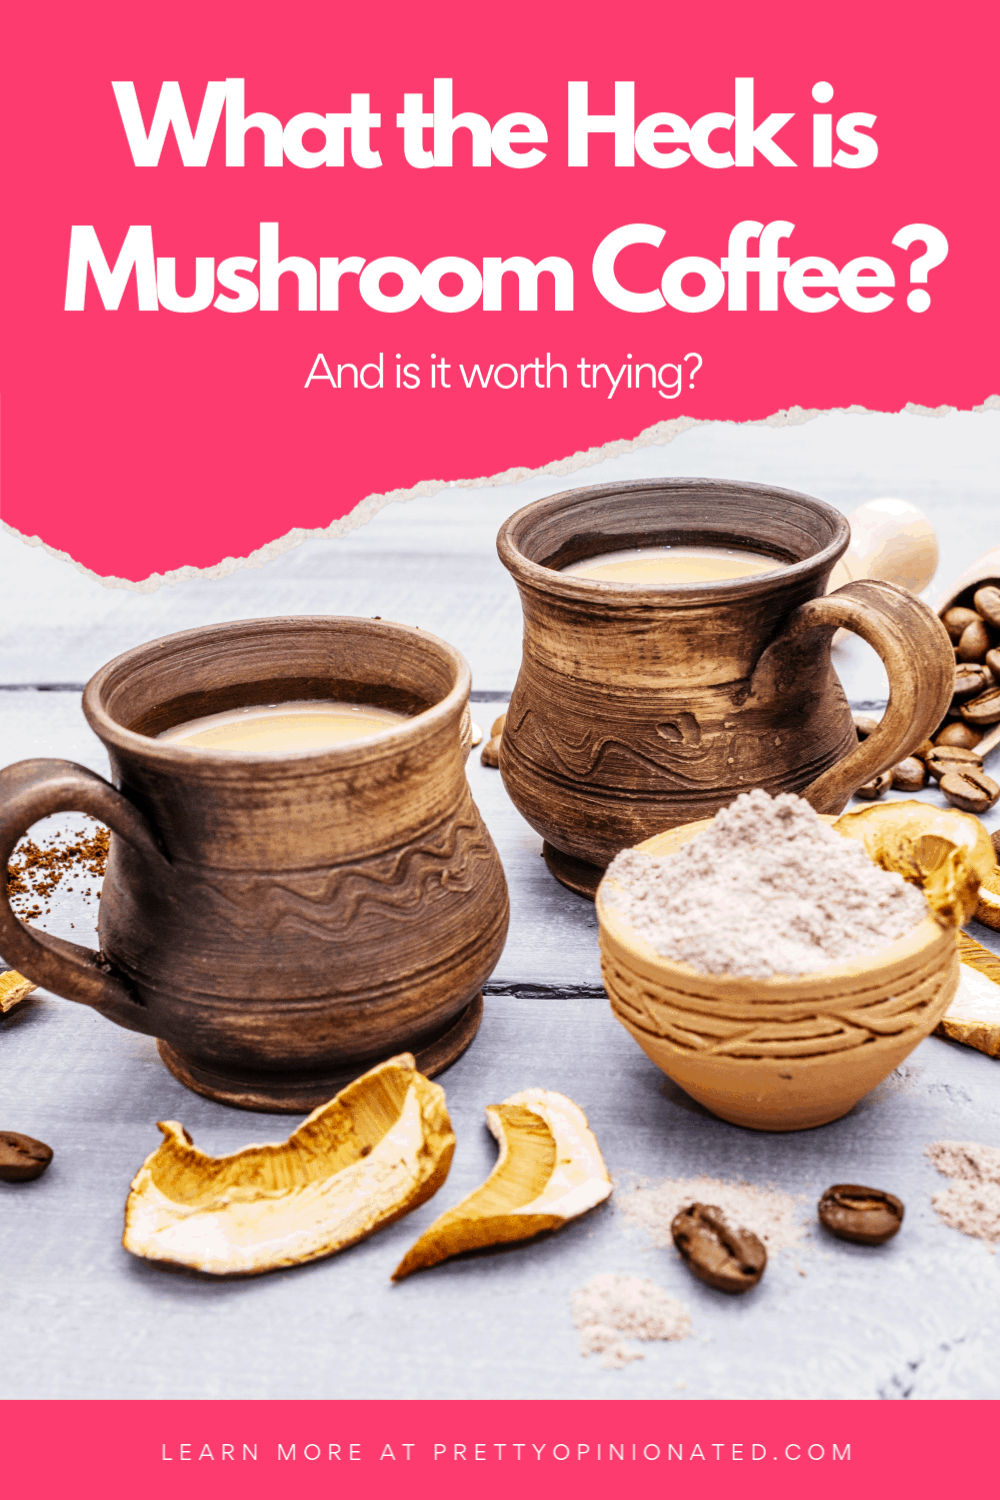 What is mushroom coffee